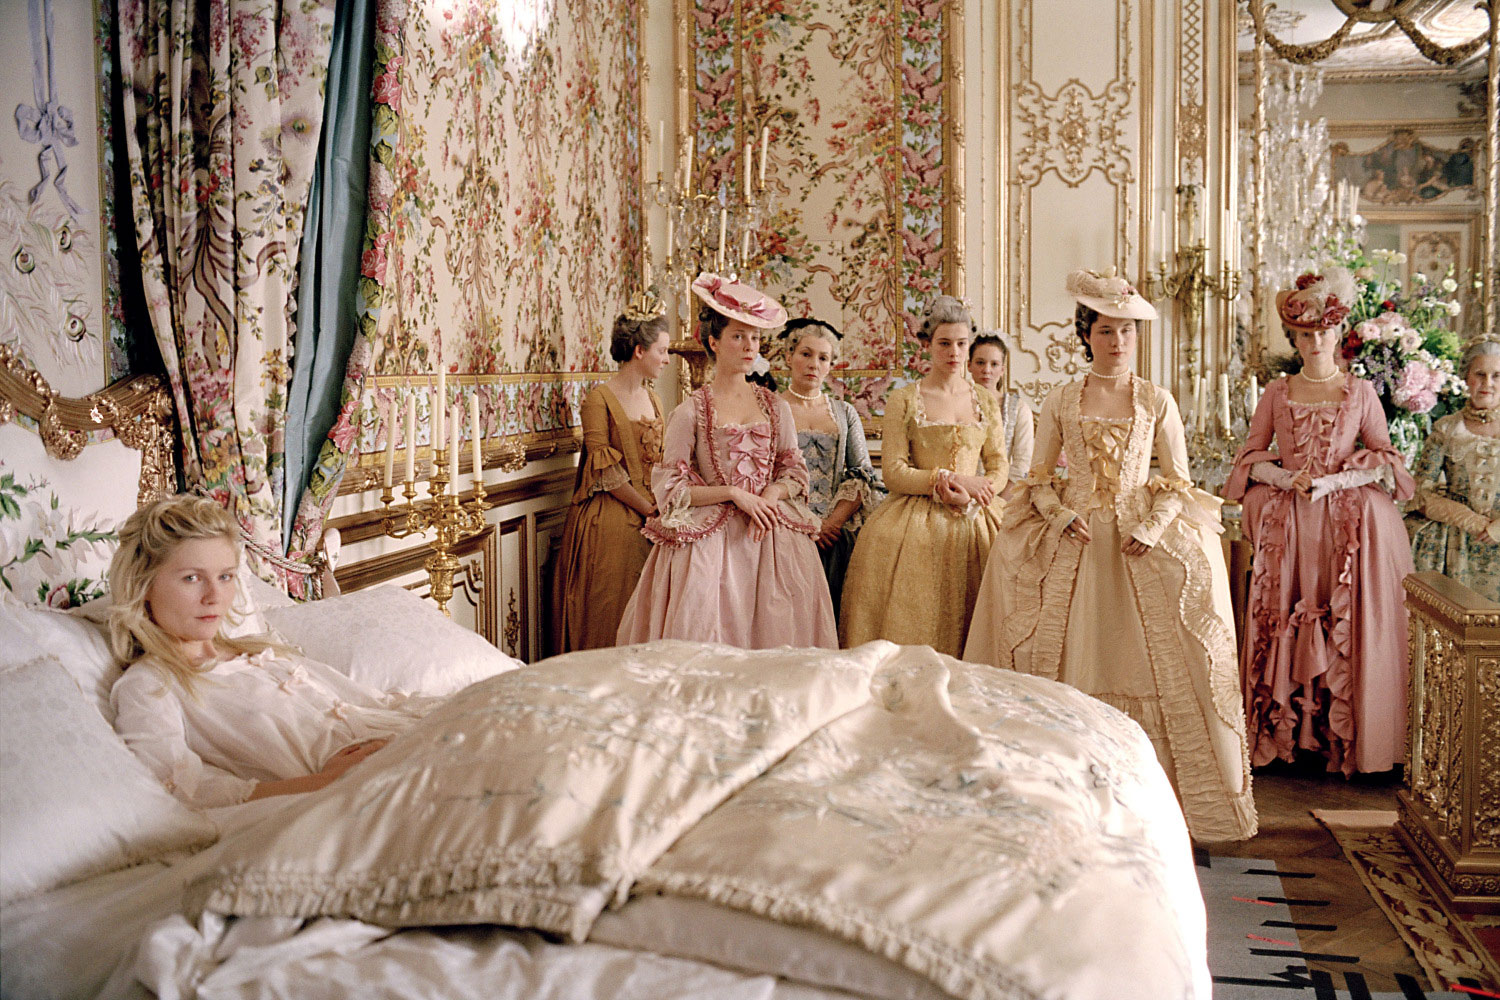 Marie antoinette marie antoinette photo 27292491 fanpop for Chambre kirsten